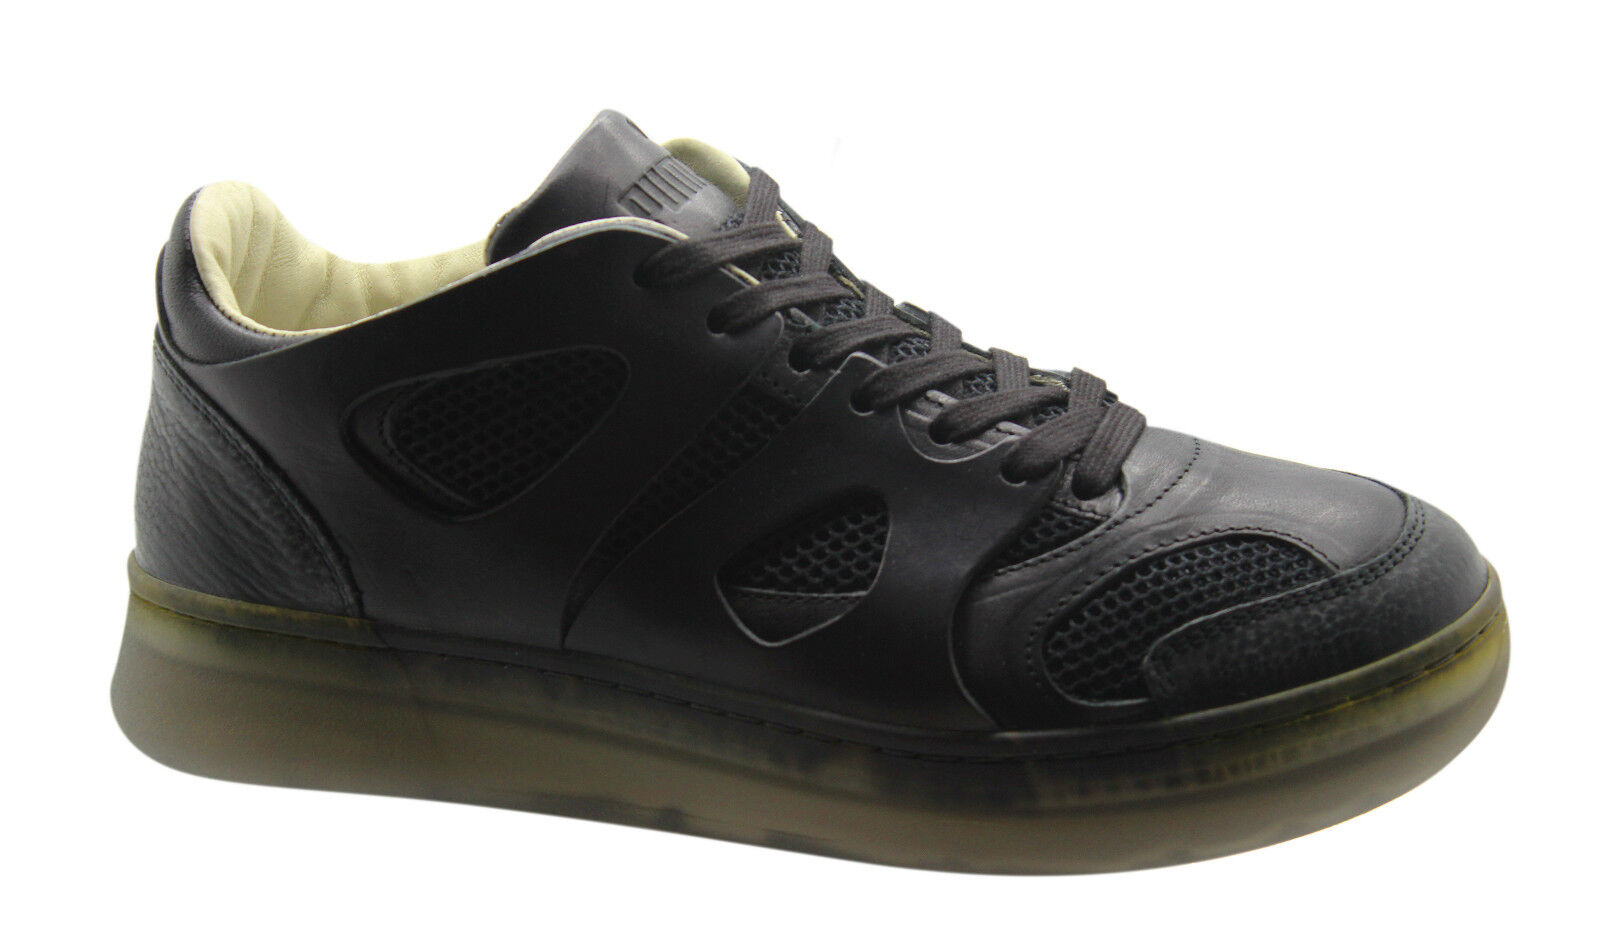 Puma Alexander McQueen McQ Move Lo Up Mens Trainers Black Lace Up Lo 357156 02 U19 f33cb9